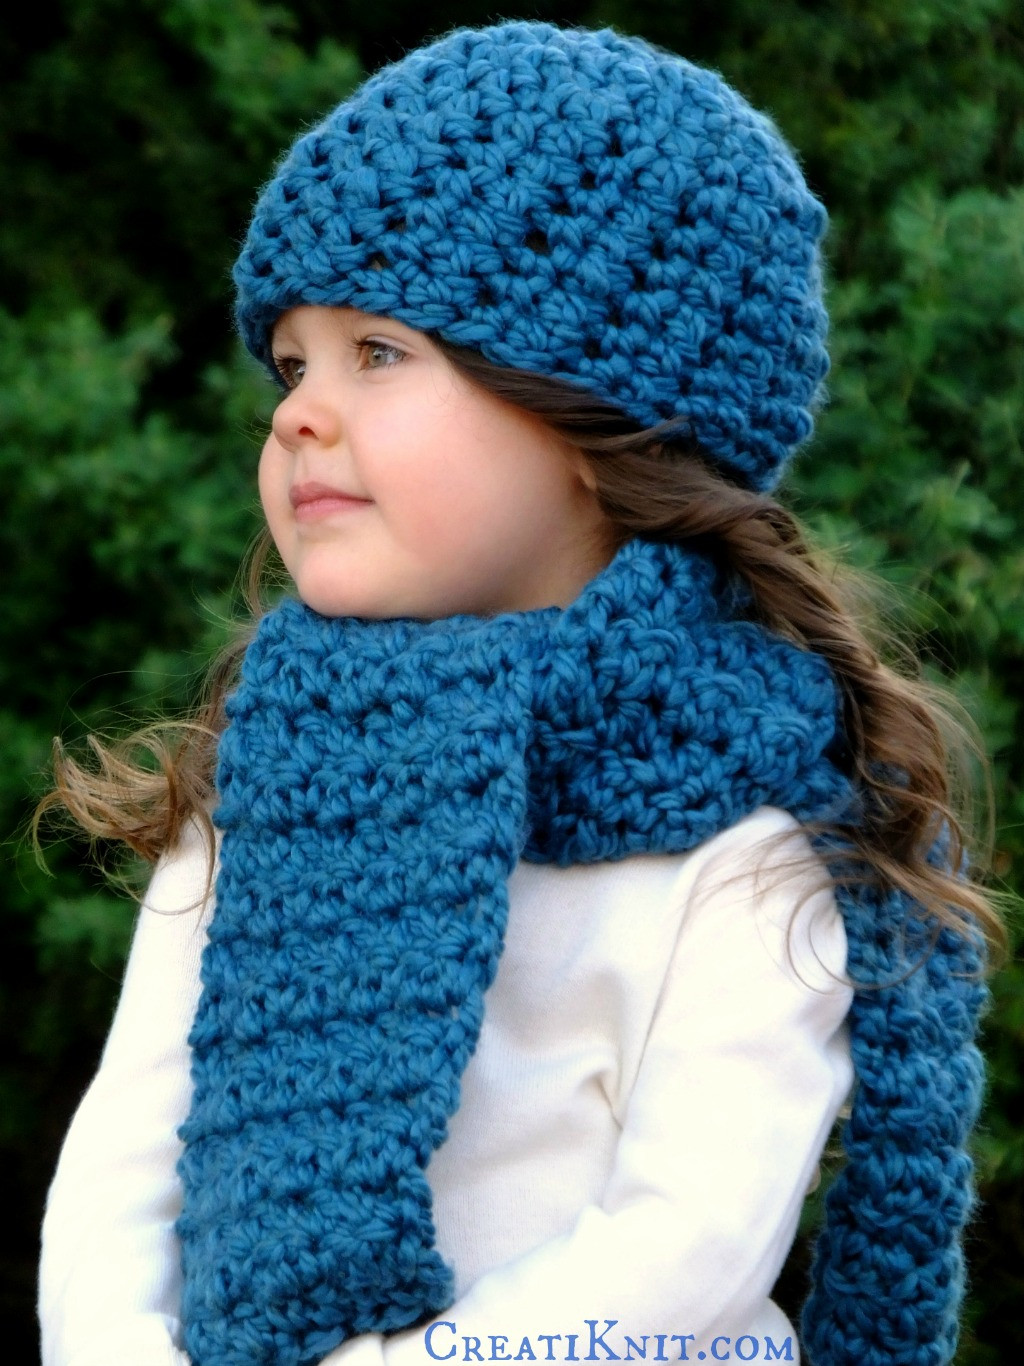 Inspirational Crochet Hat and Scarf Sets Crochet Hat and Scarf Set Of Amazing 44 Models Crochet Hat and Scarf Set